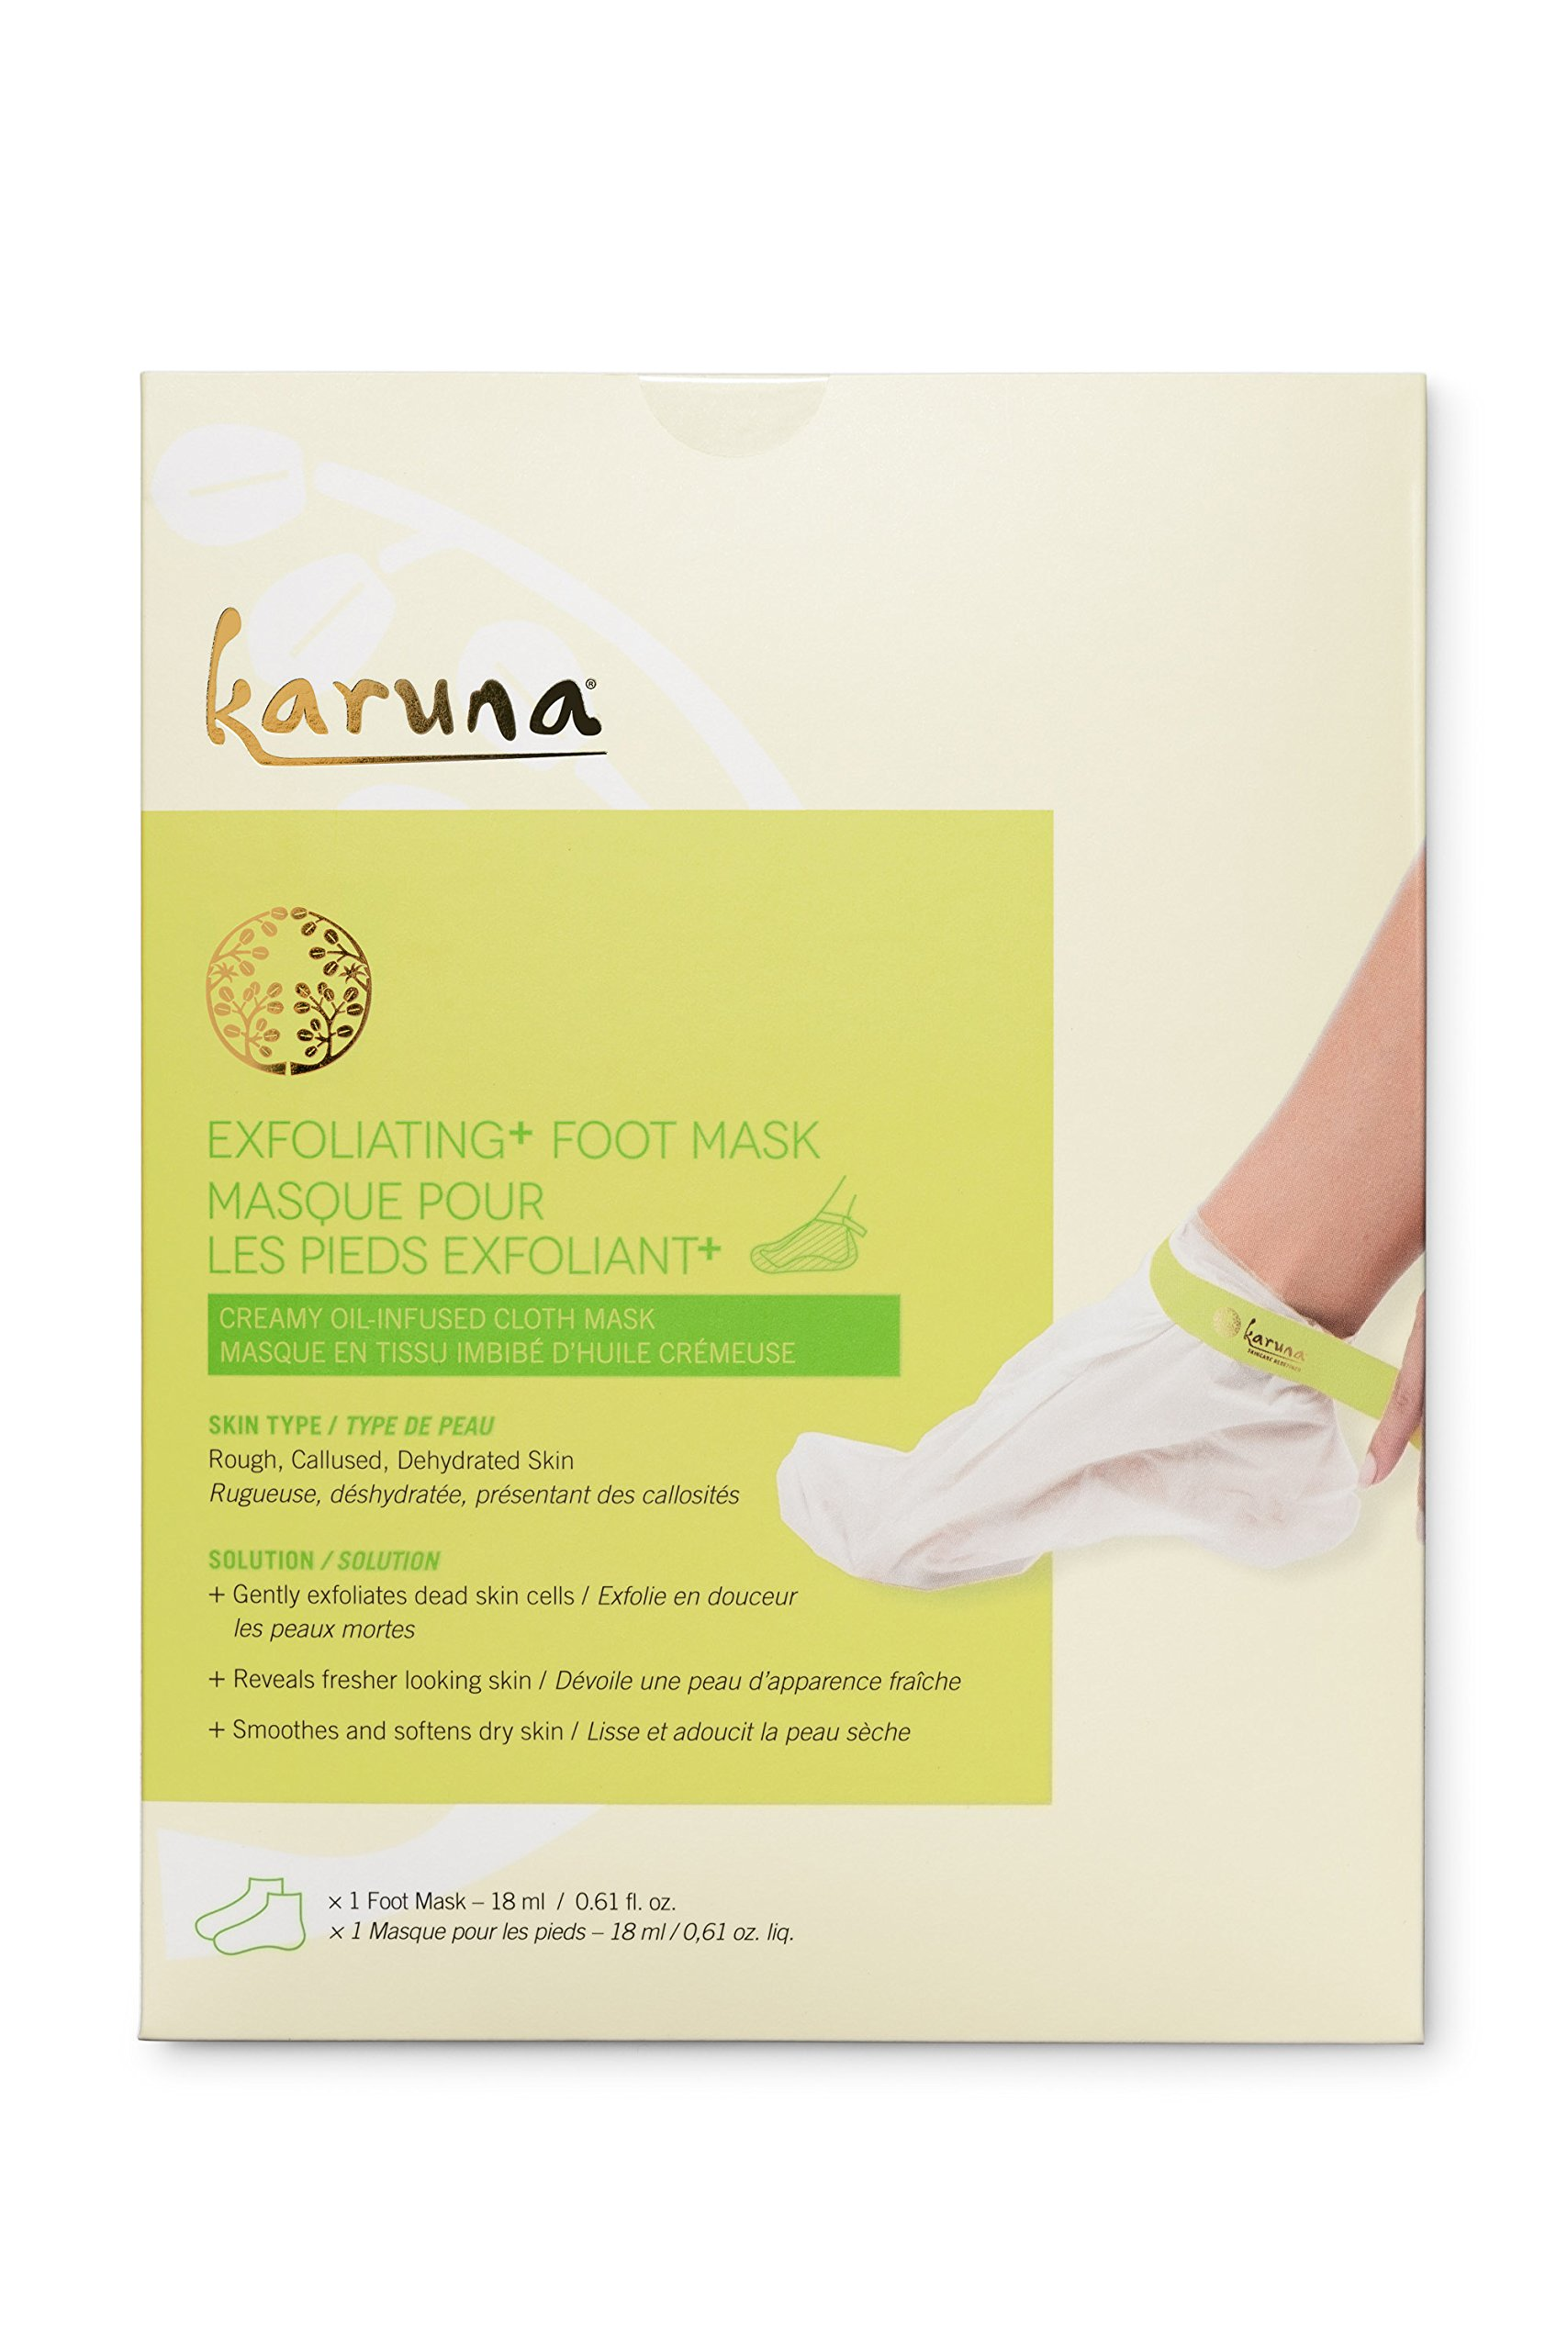 Karuna Single Exfoliating + Foot Mask, 0.61 fl. oz.